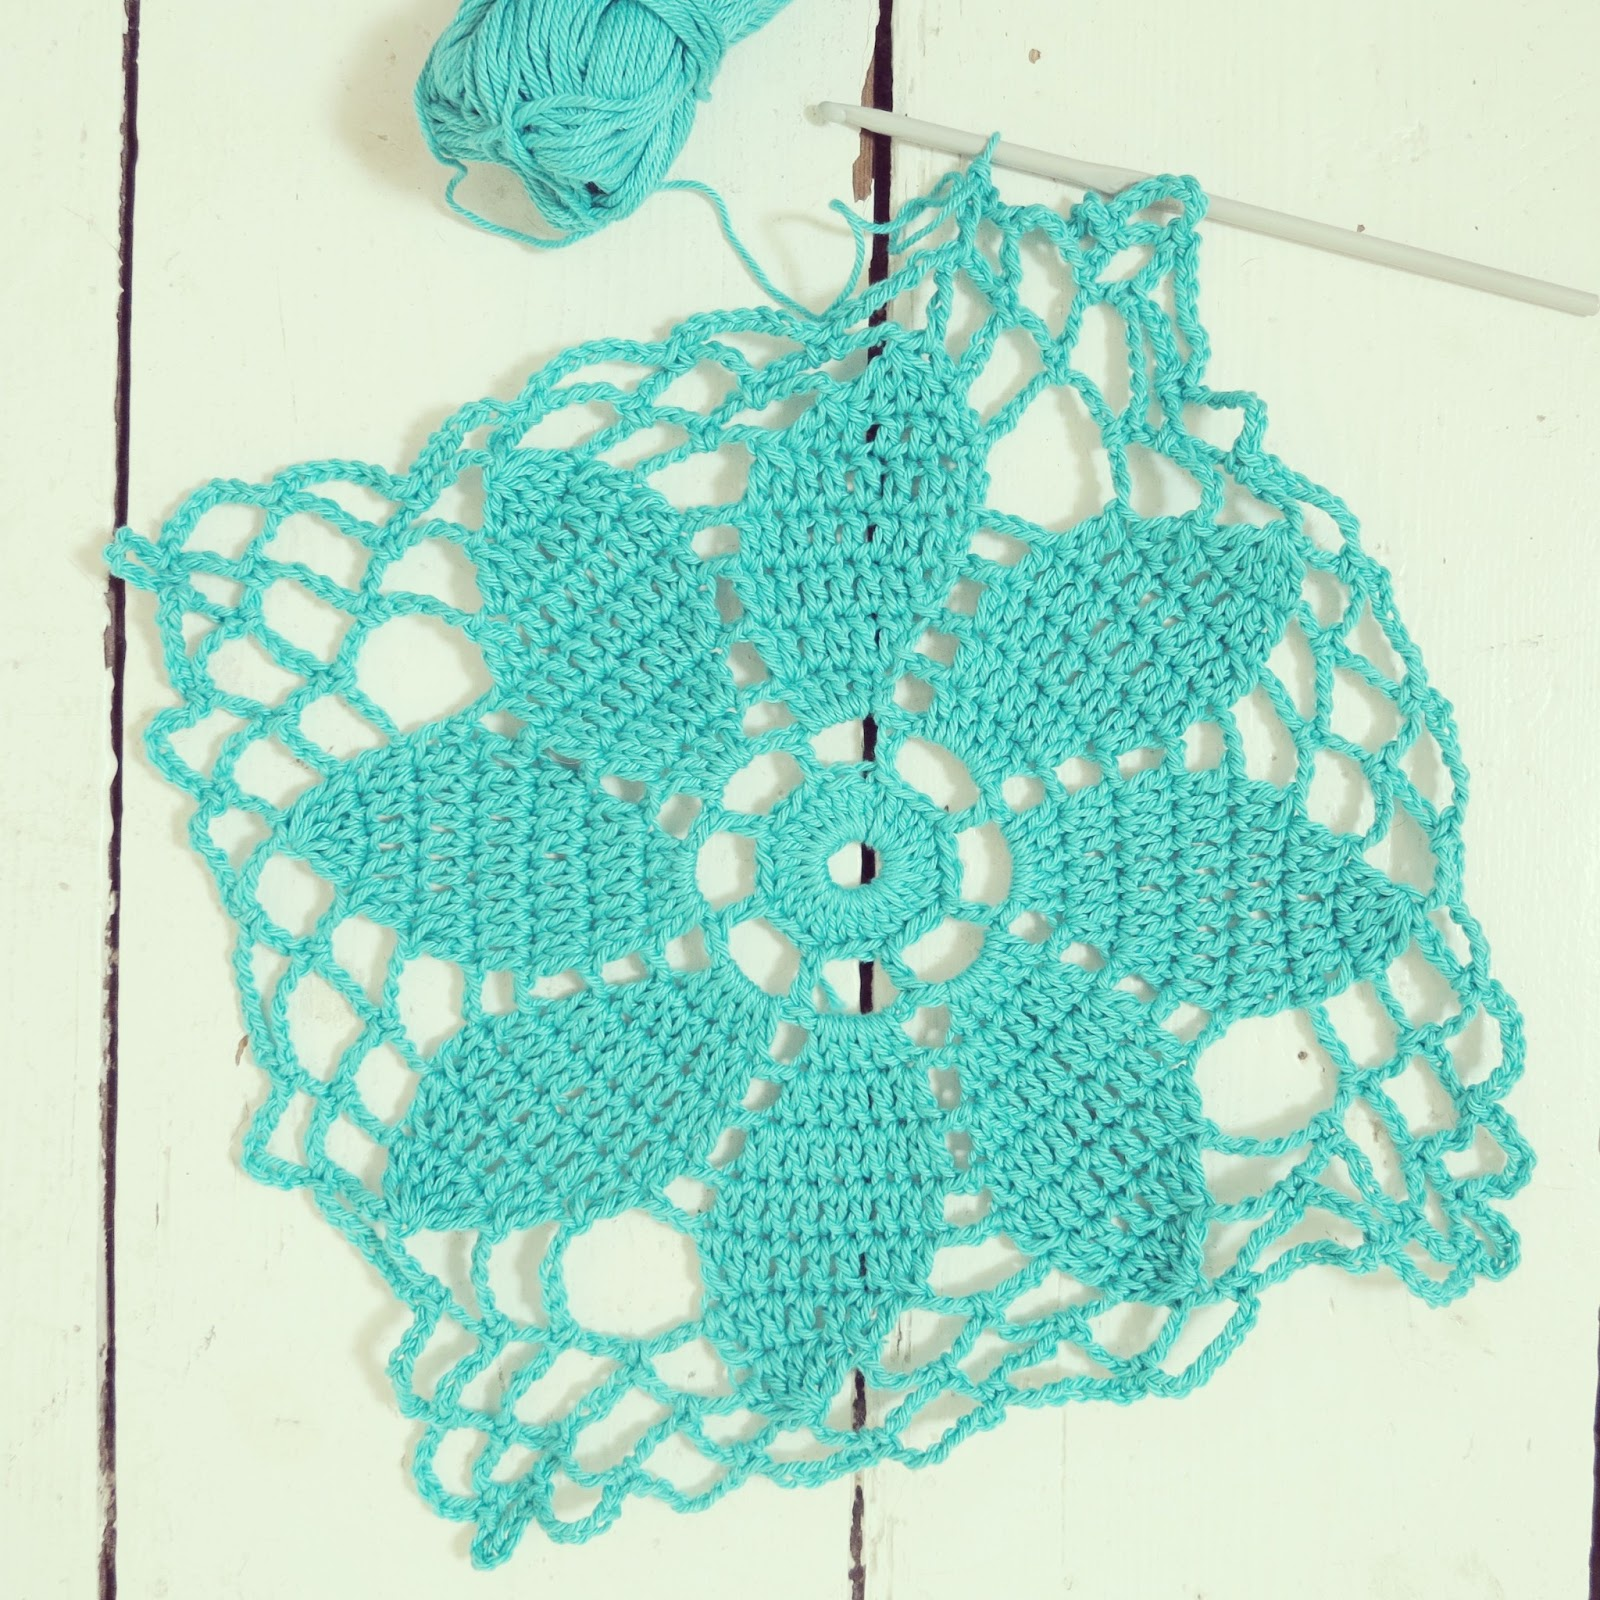 Japanese Crochet Bag : ByHaafner, crochet, Japanese crochet pattern, market bag